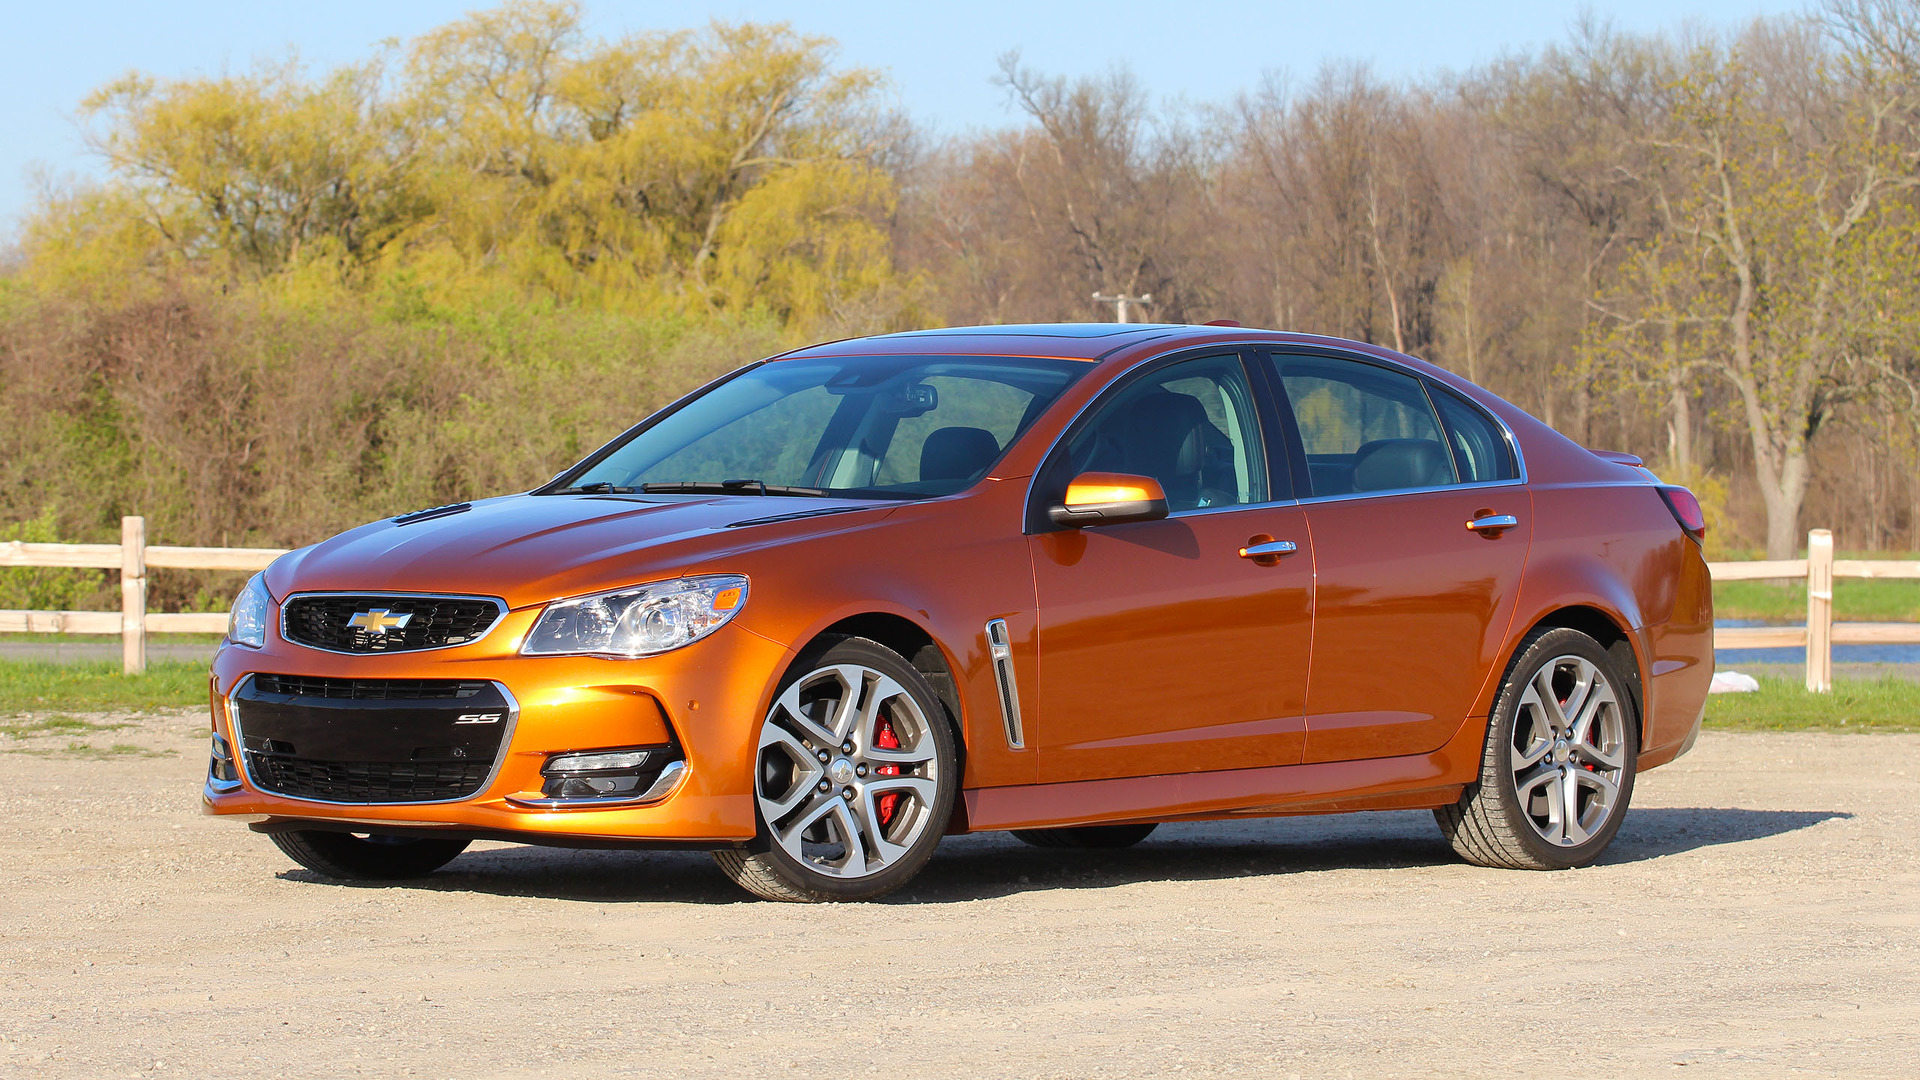 2017 Chevy Ss >> 2017 Chevy Ss Review Goodnight Sweet Prince